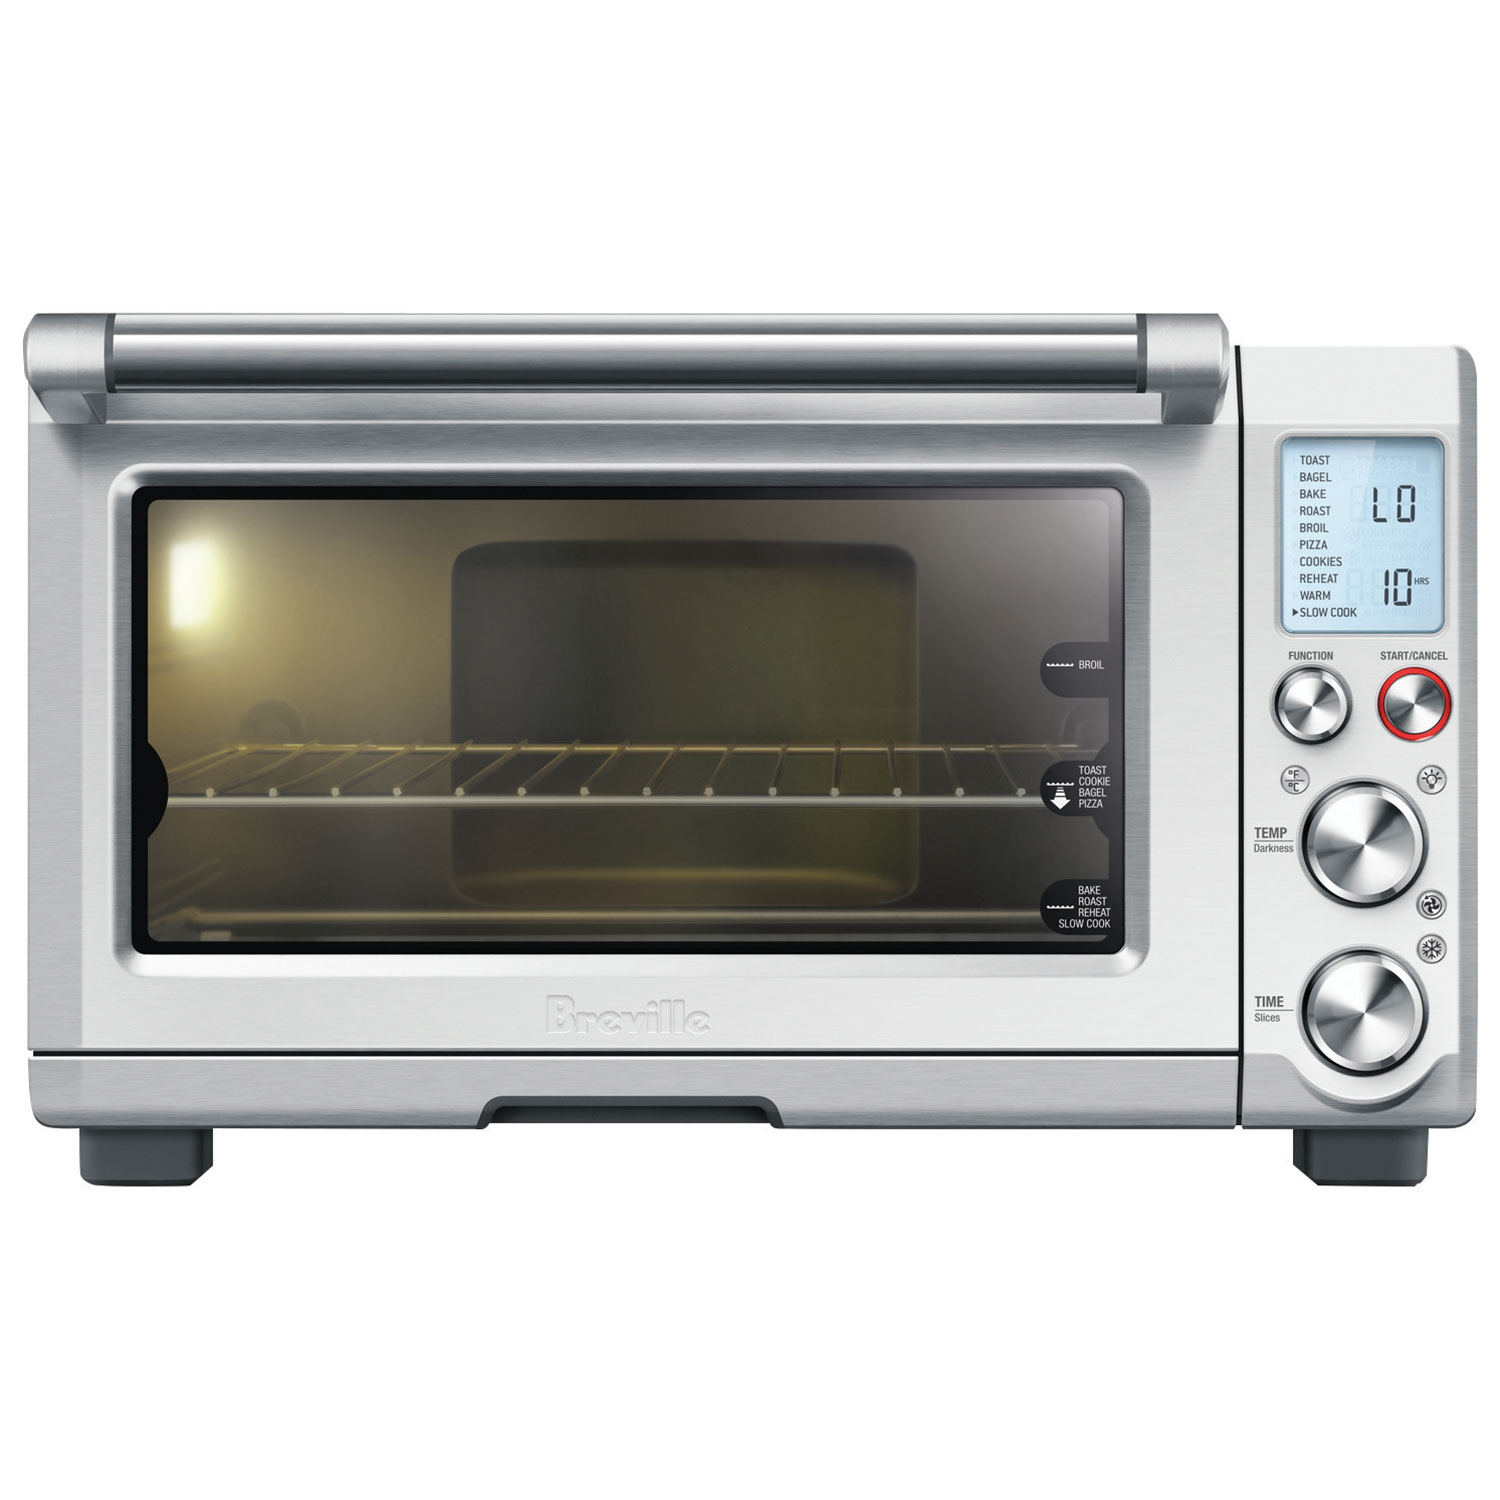 dining kitchen amazon for toaster foot oven cubic sale com dp